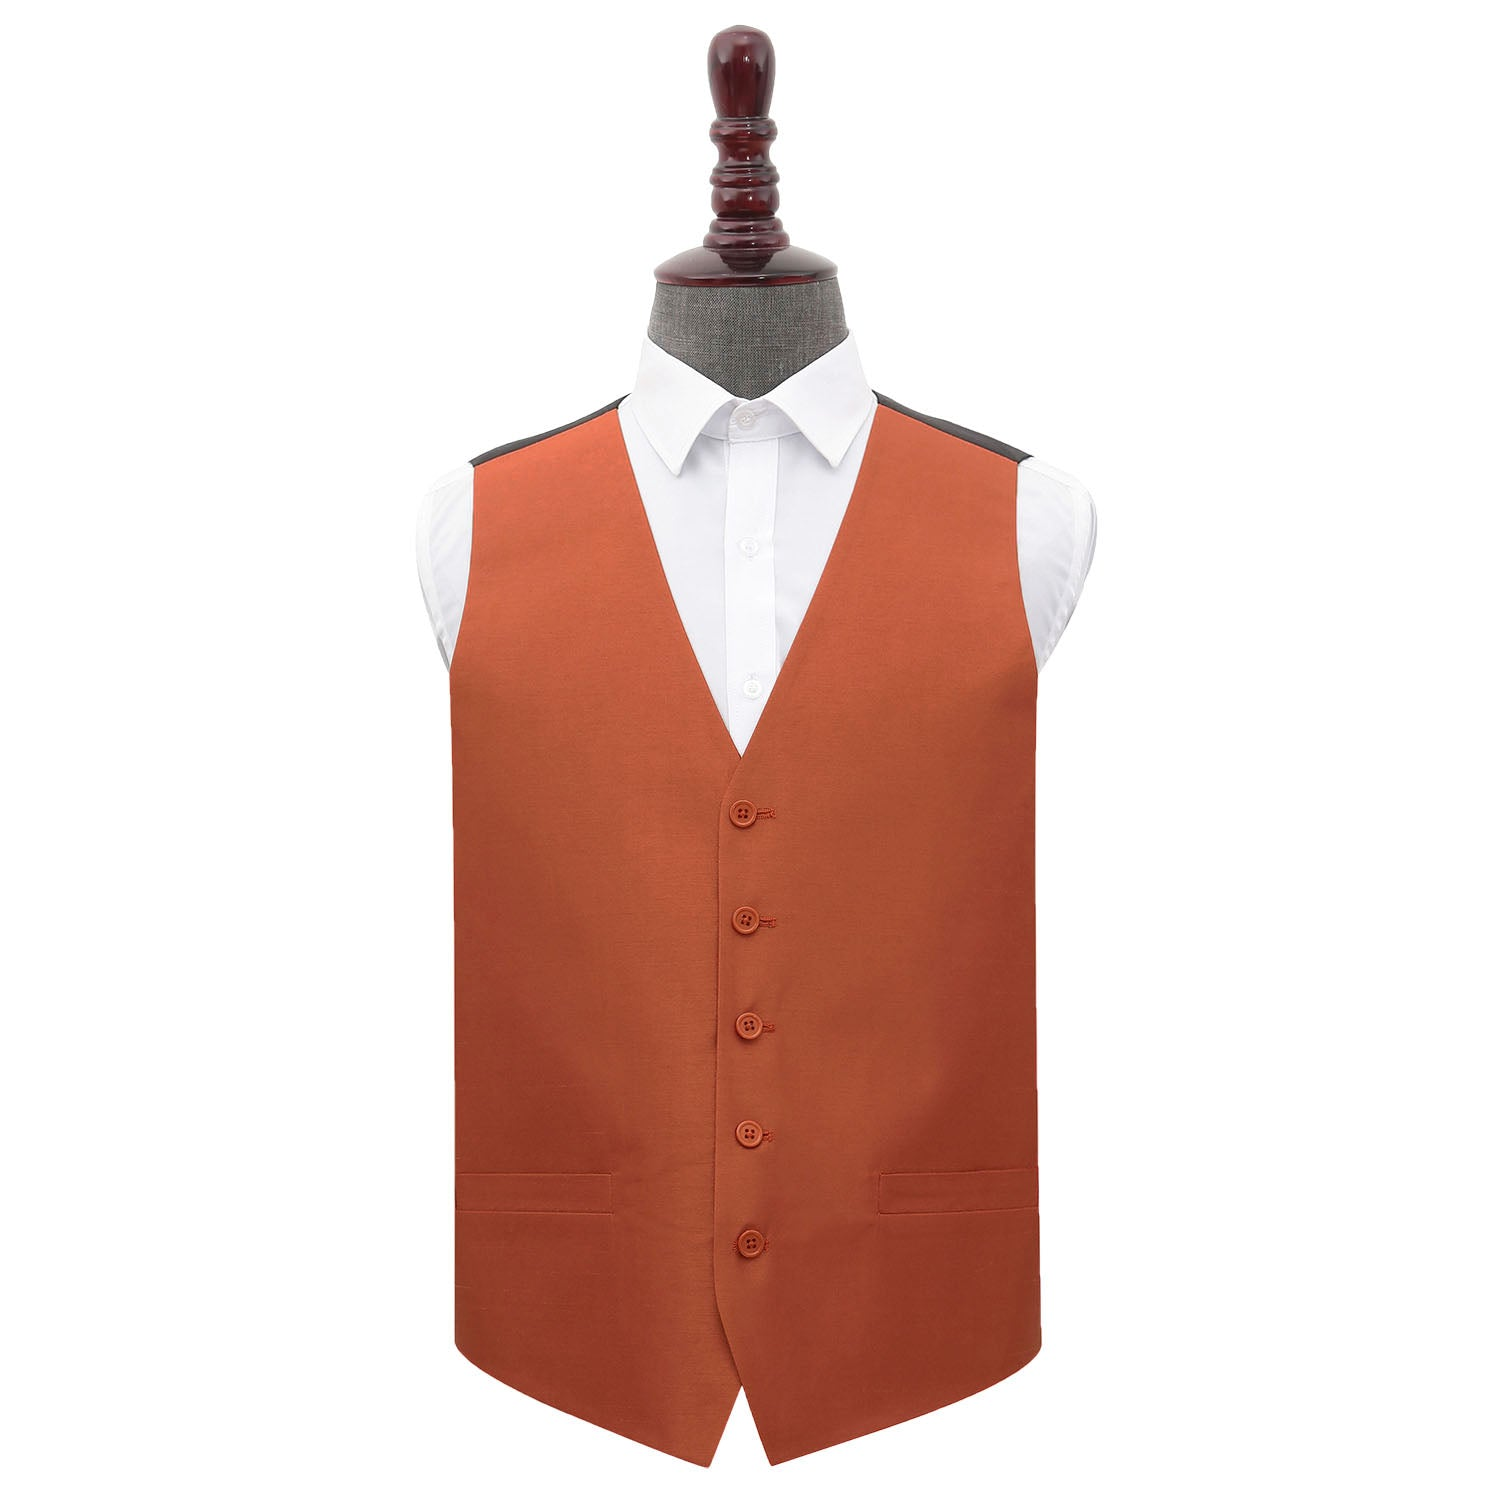 Plain Shantung Wedding Waistcoat - Rust, 48', Clothing by Low Cost Gifts